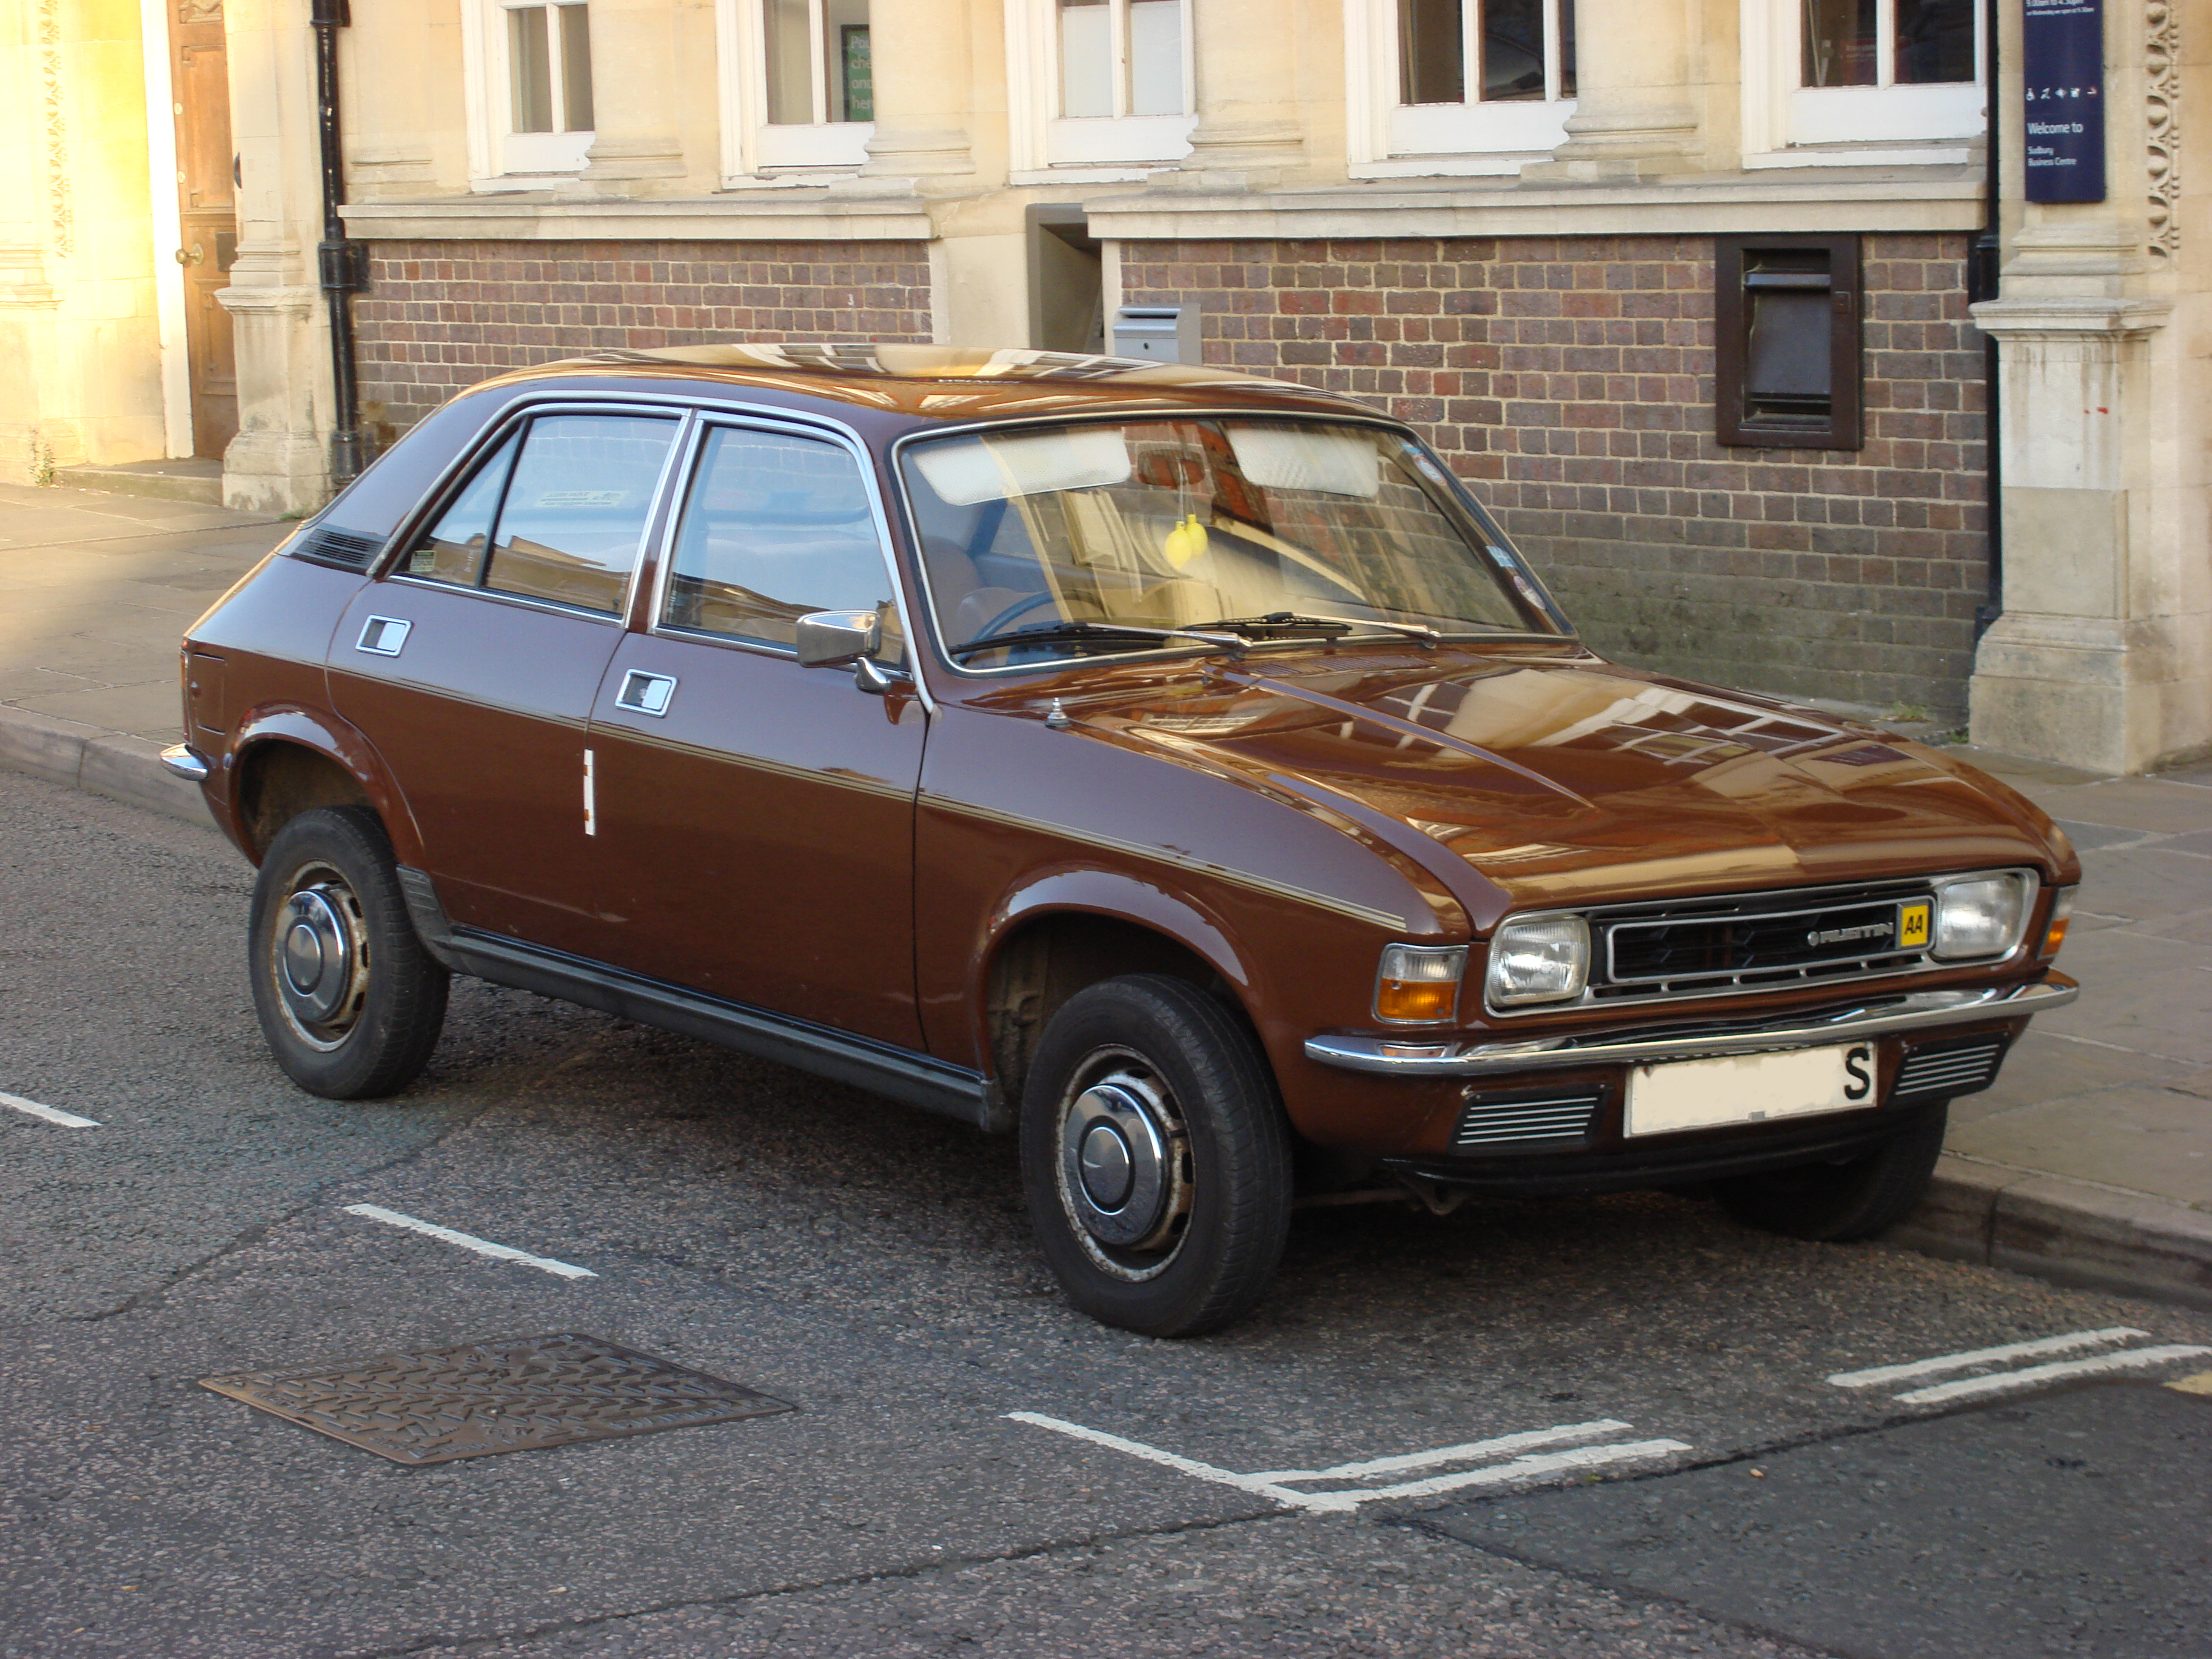 Color car with most accidents -  Shit Brown Austin Allegro